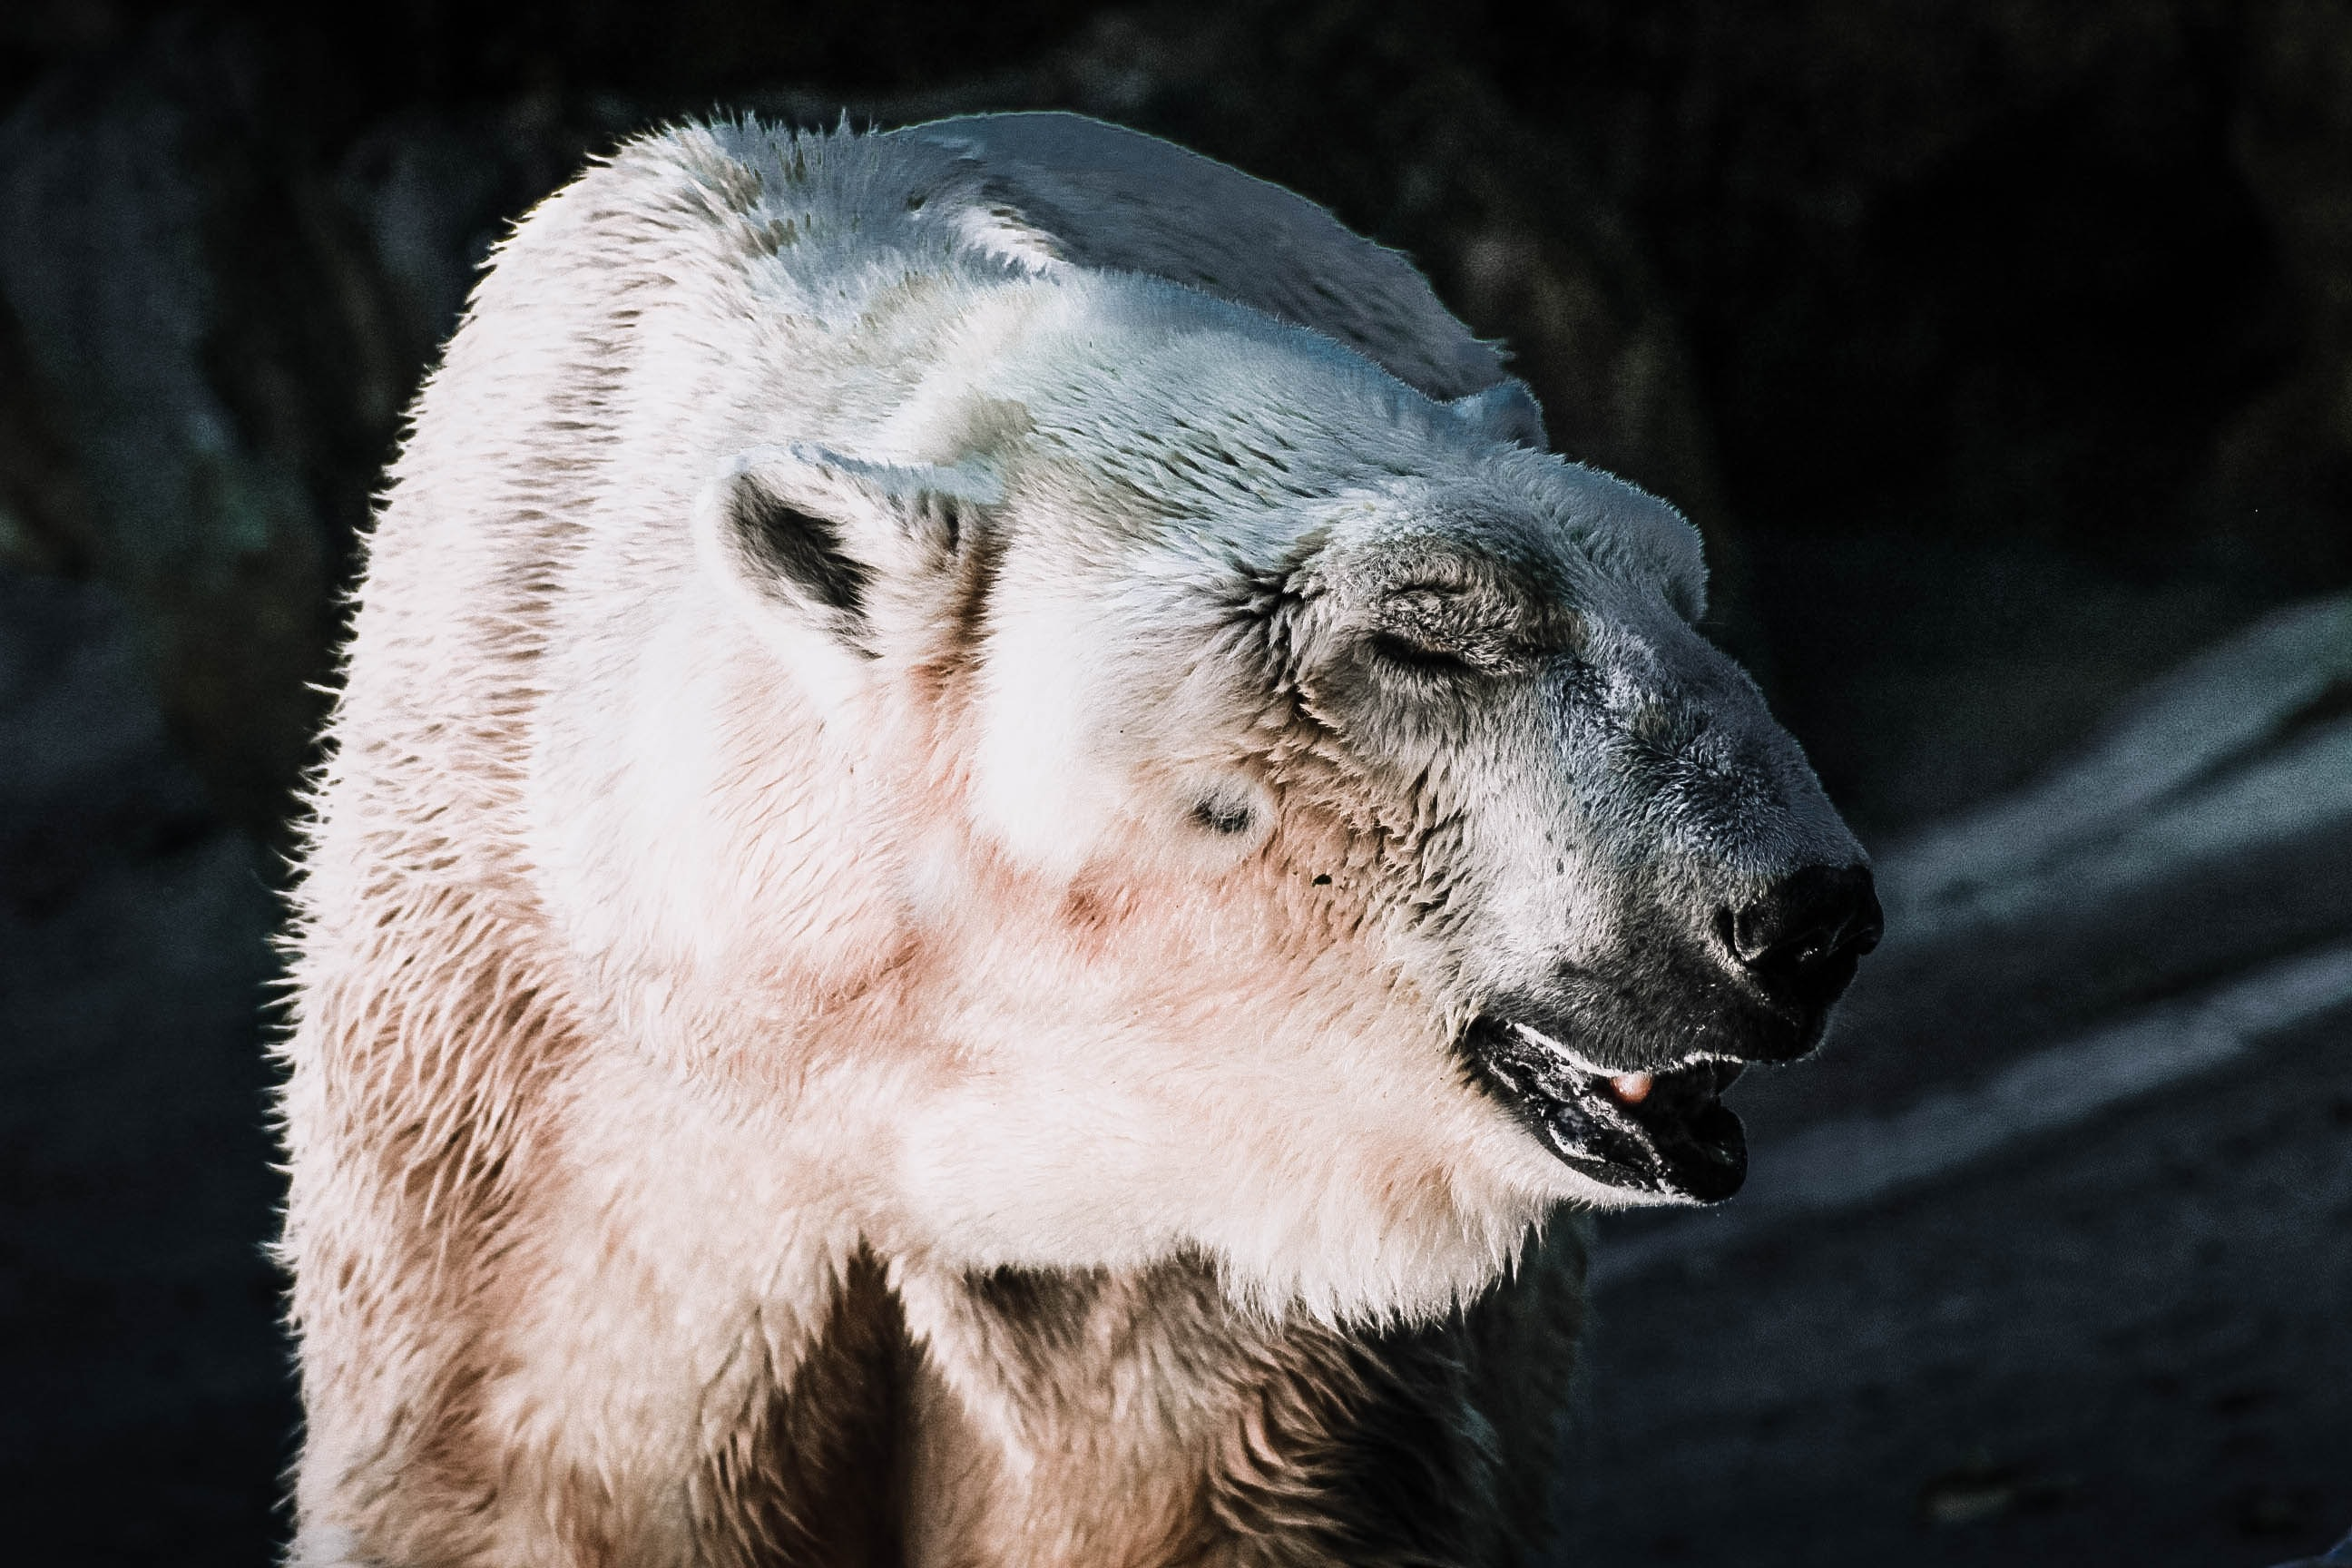 Polar bear with half-closed eyes and wet fur in a dark cave in Bronx Zoo